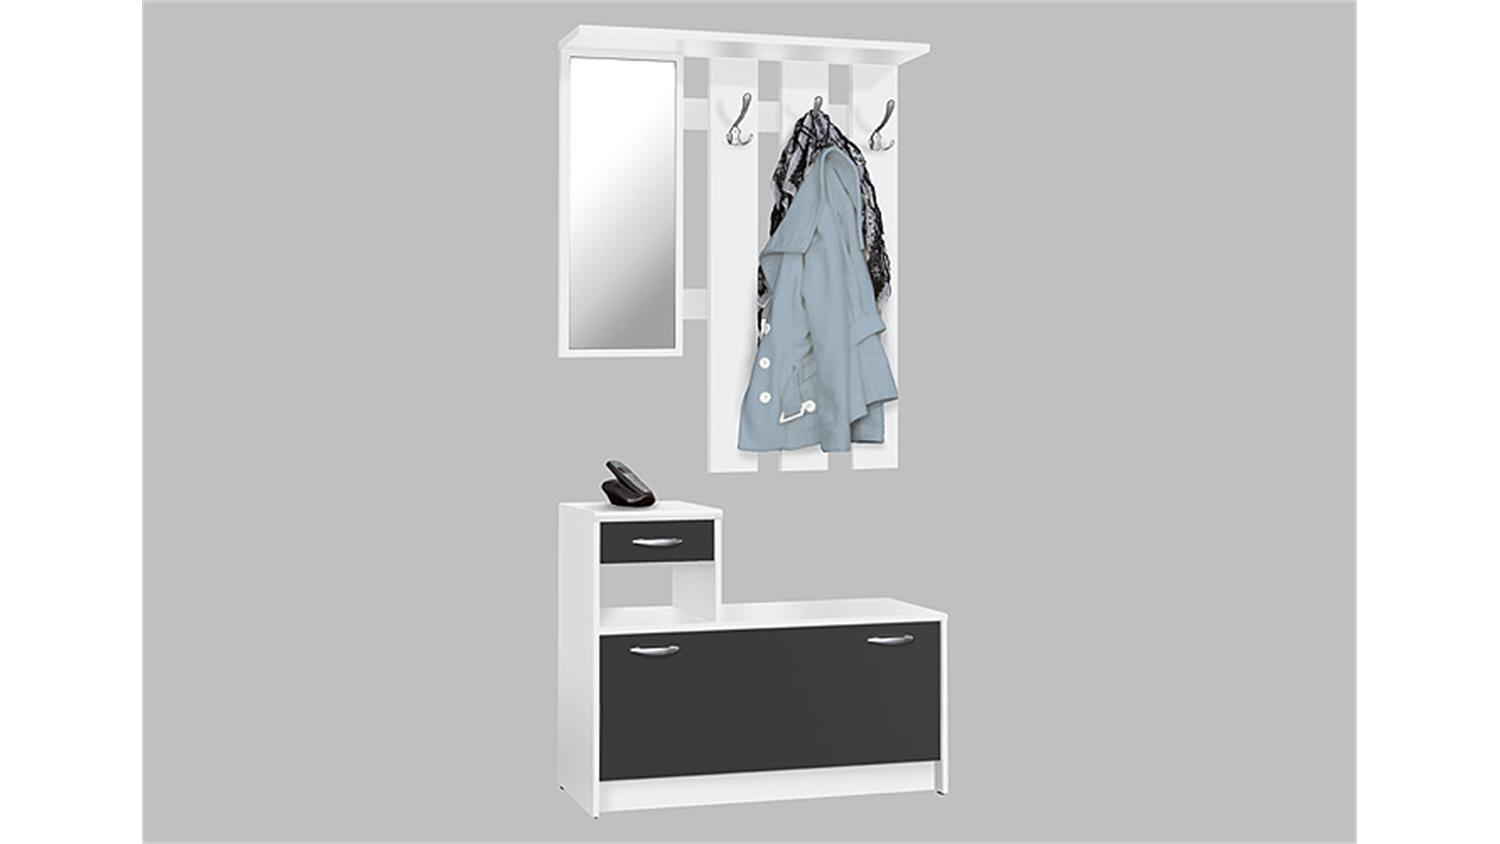 garderobe rudolf mit spiegel schuhkipper wei schwarz. Black Bedroom Furniture Sets. Home Design Ideas